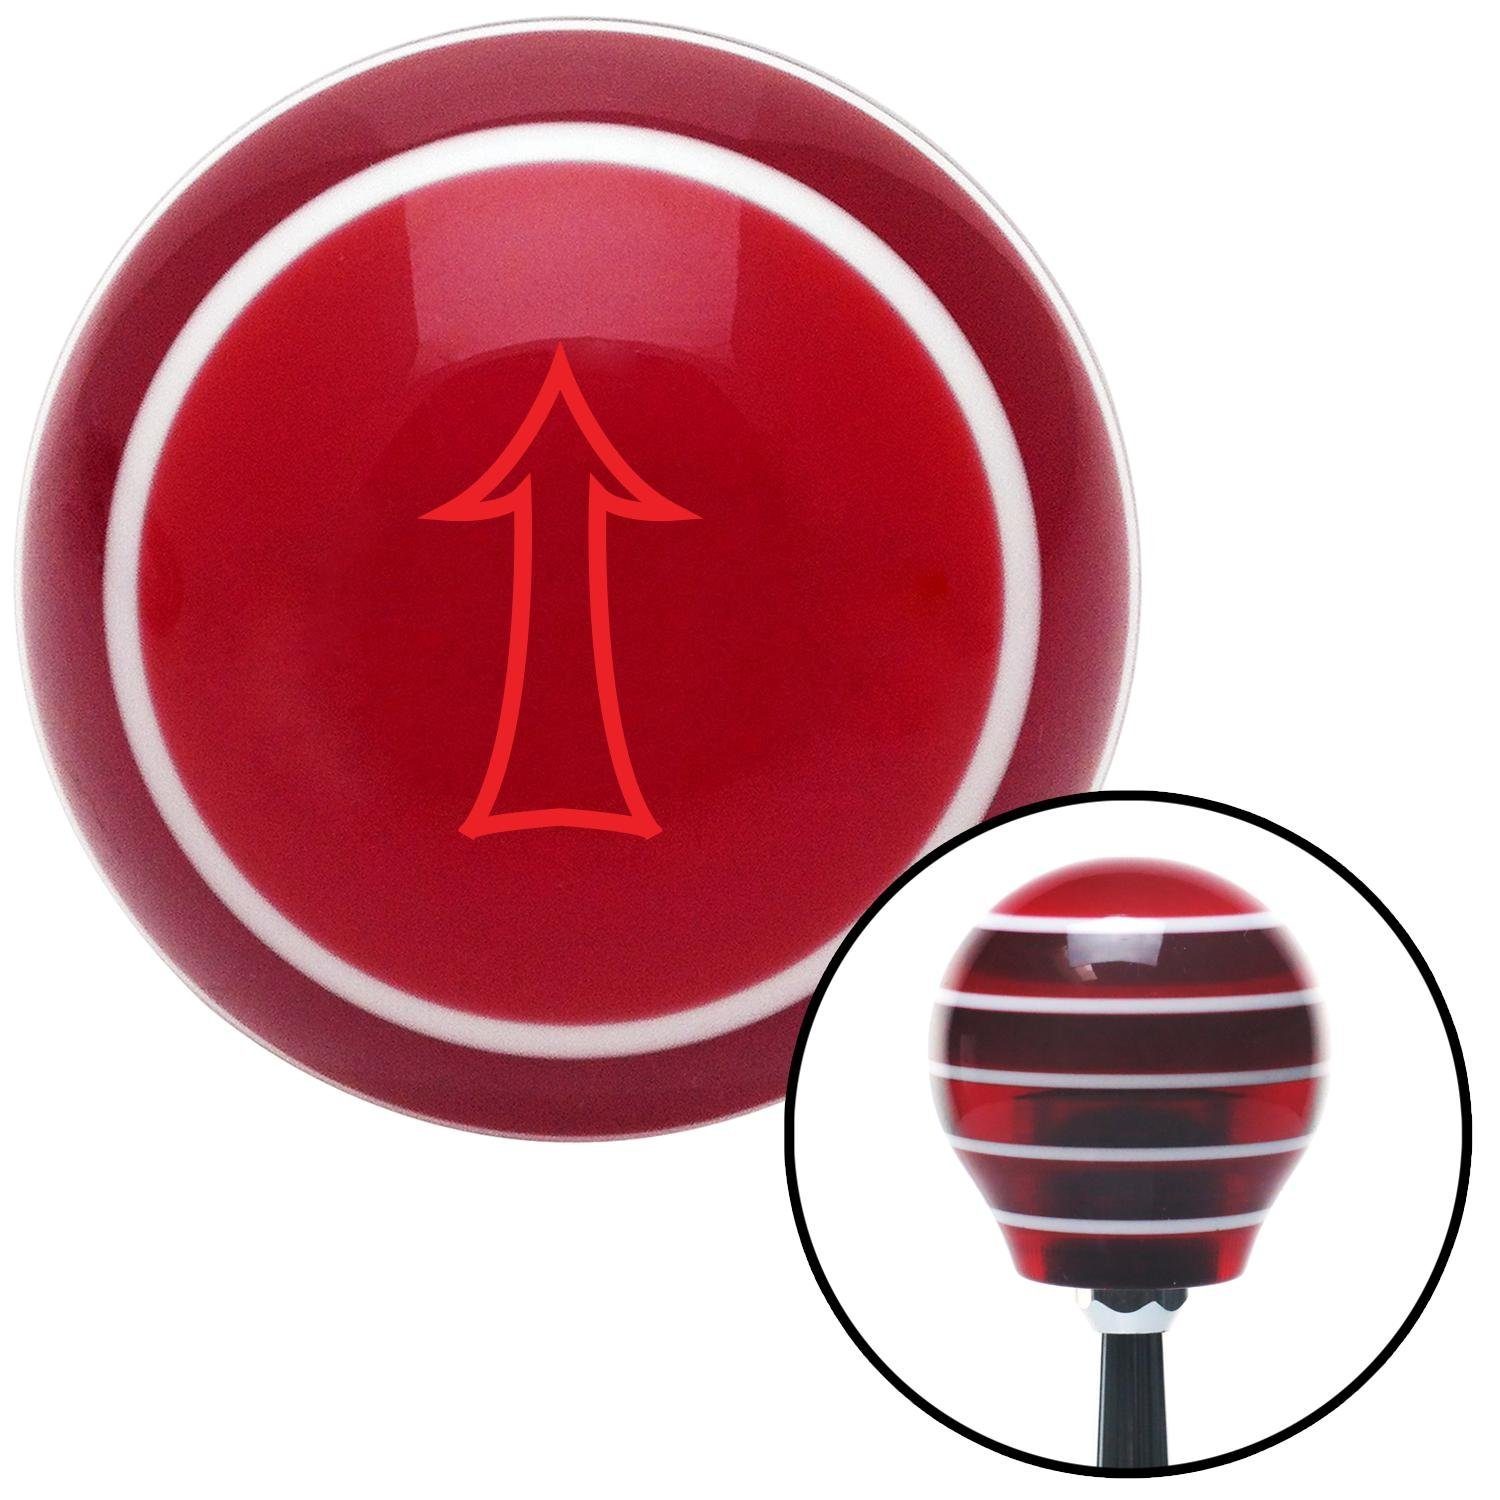 American Shifter 111944 Red Stripe Shift Knob with M16 x 1.5 Insert Red Fancy Outlined Directional Arrow Up